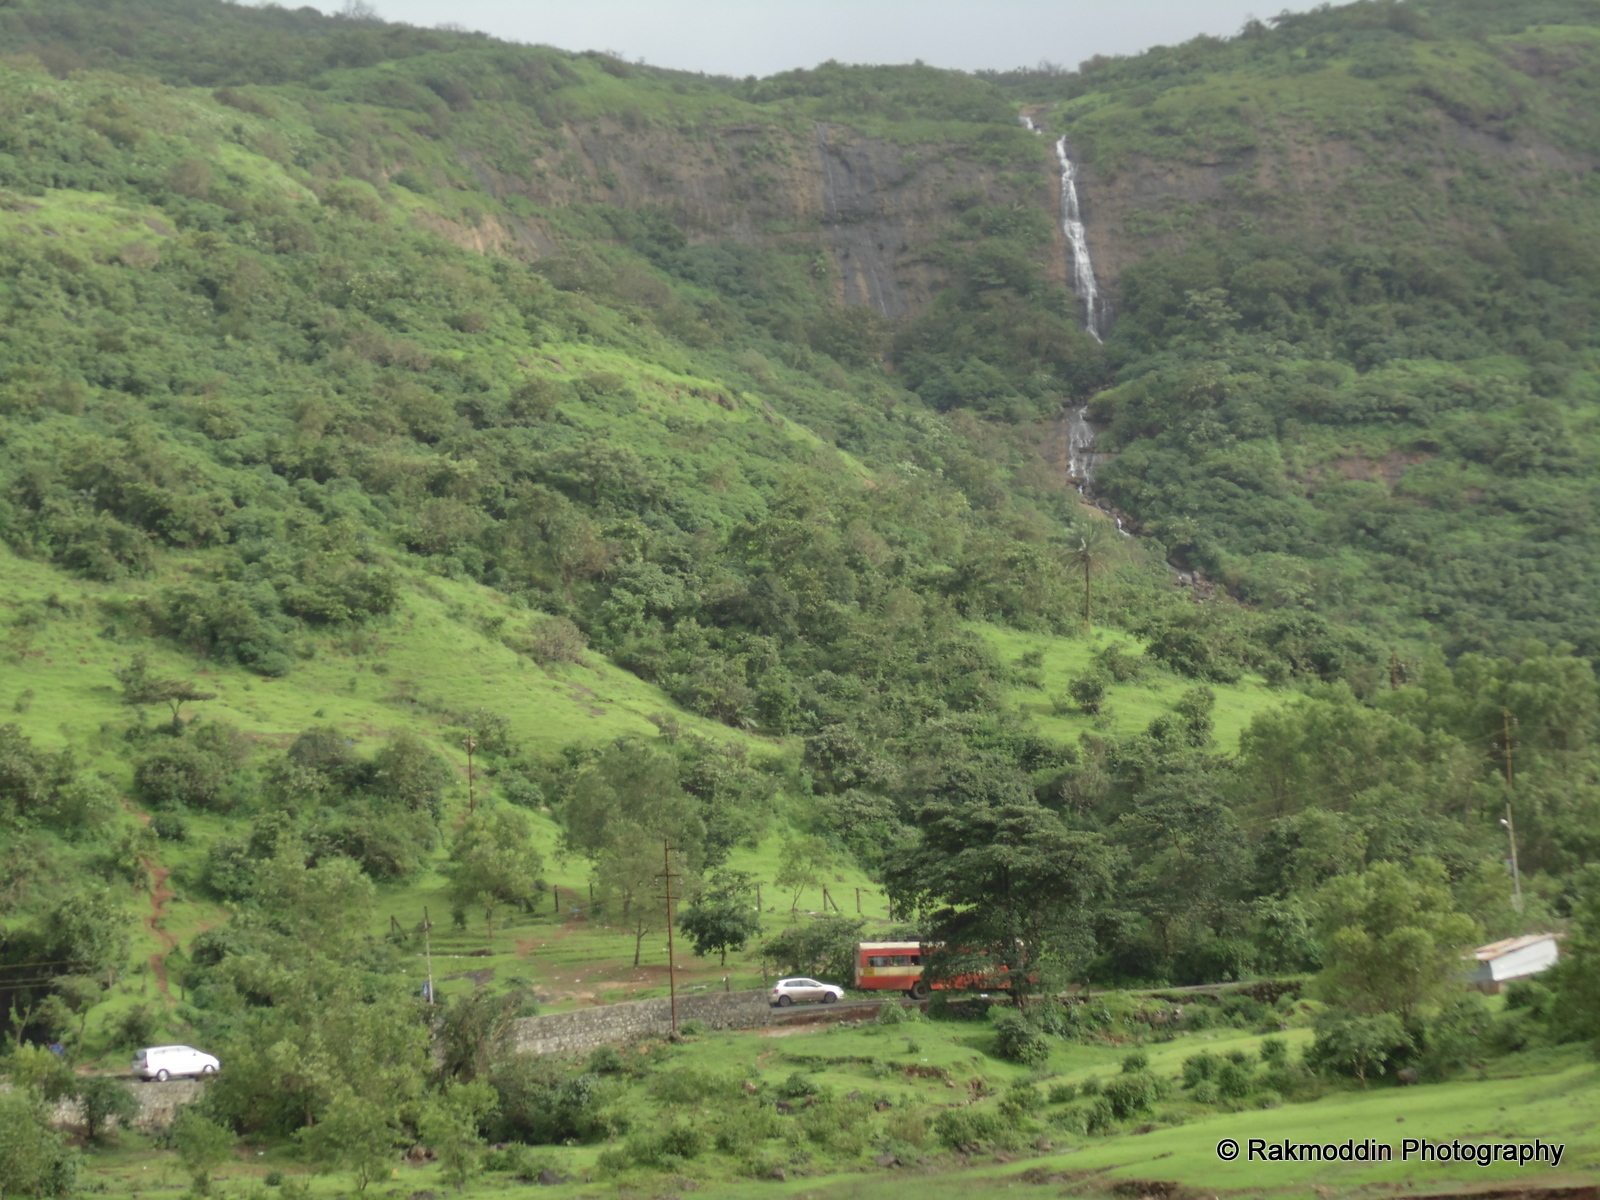 Waterfalls near Lonavala Lake, near Pune, Maharashtra, India